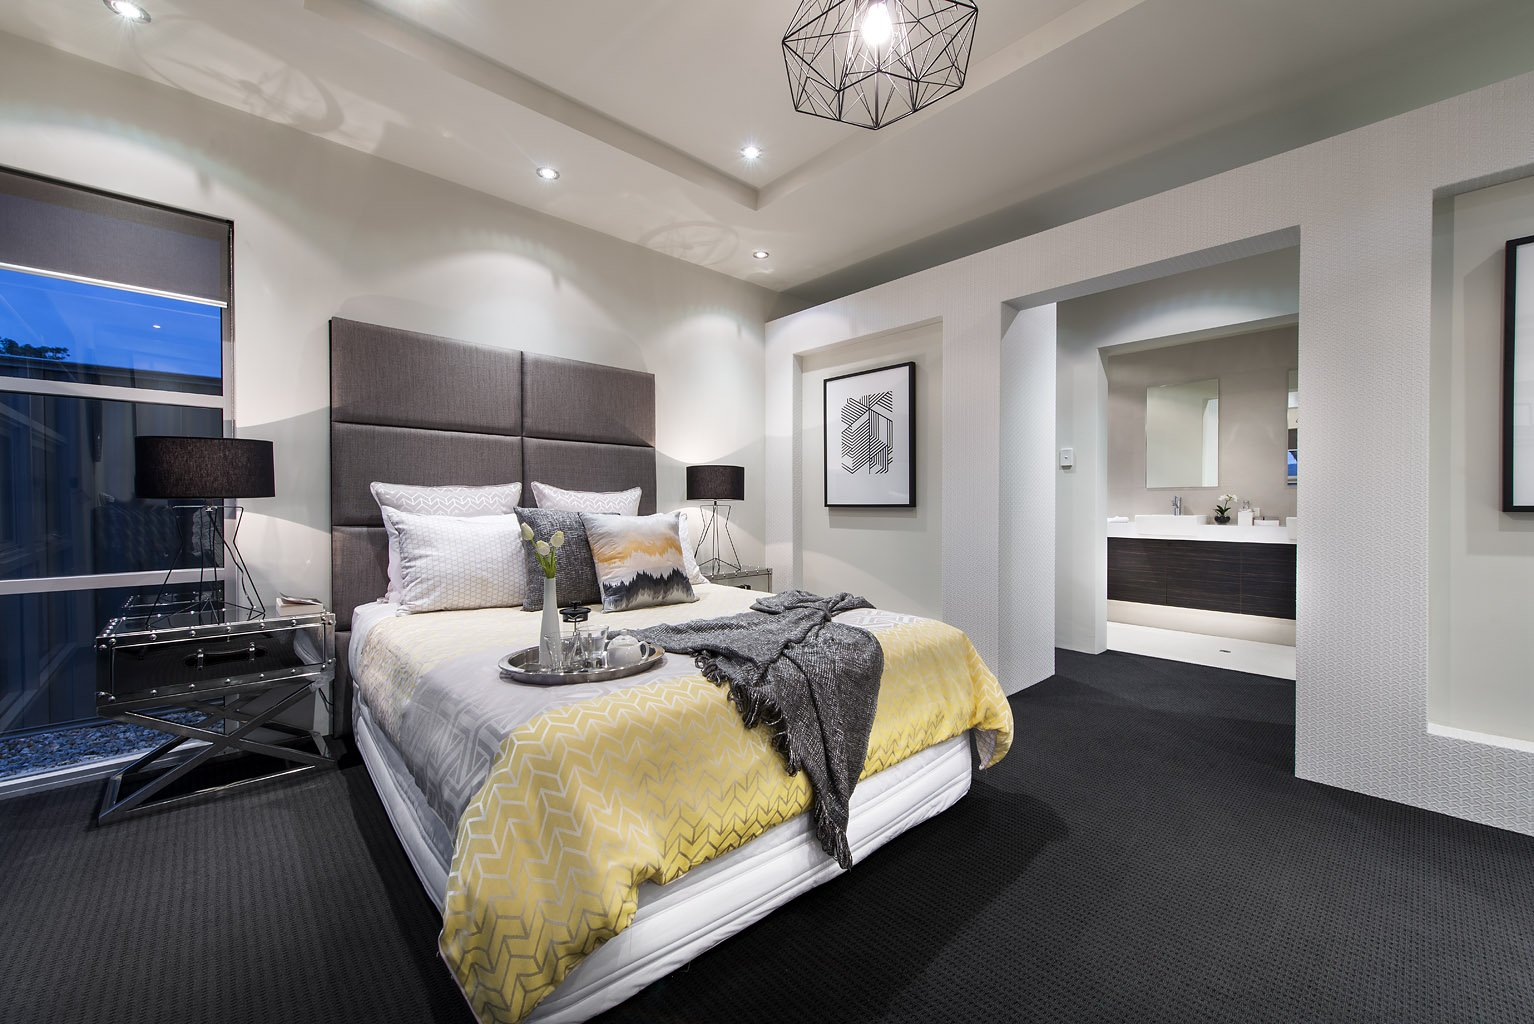 Luxurious style double bedroom with large bed, luxury designer furniture and private ensuite bathroom